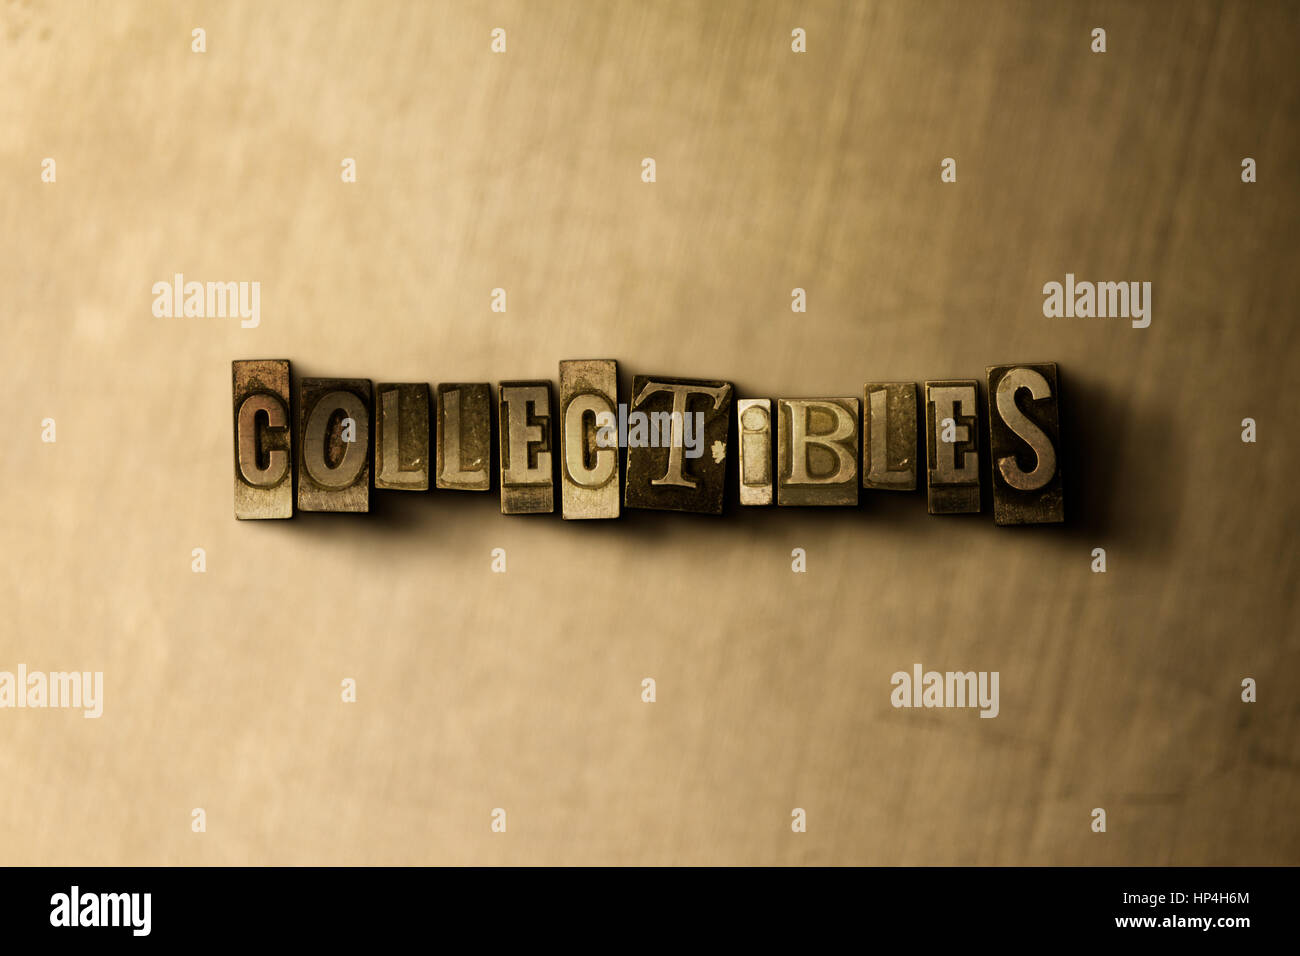 COLLECTIBLES - close-up of grungy vintage typeset word on metal backdrop. Royalty free stock illustration.  Can - Stock Image